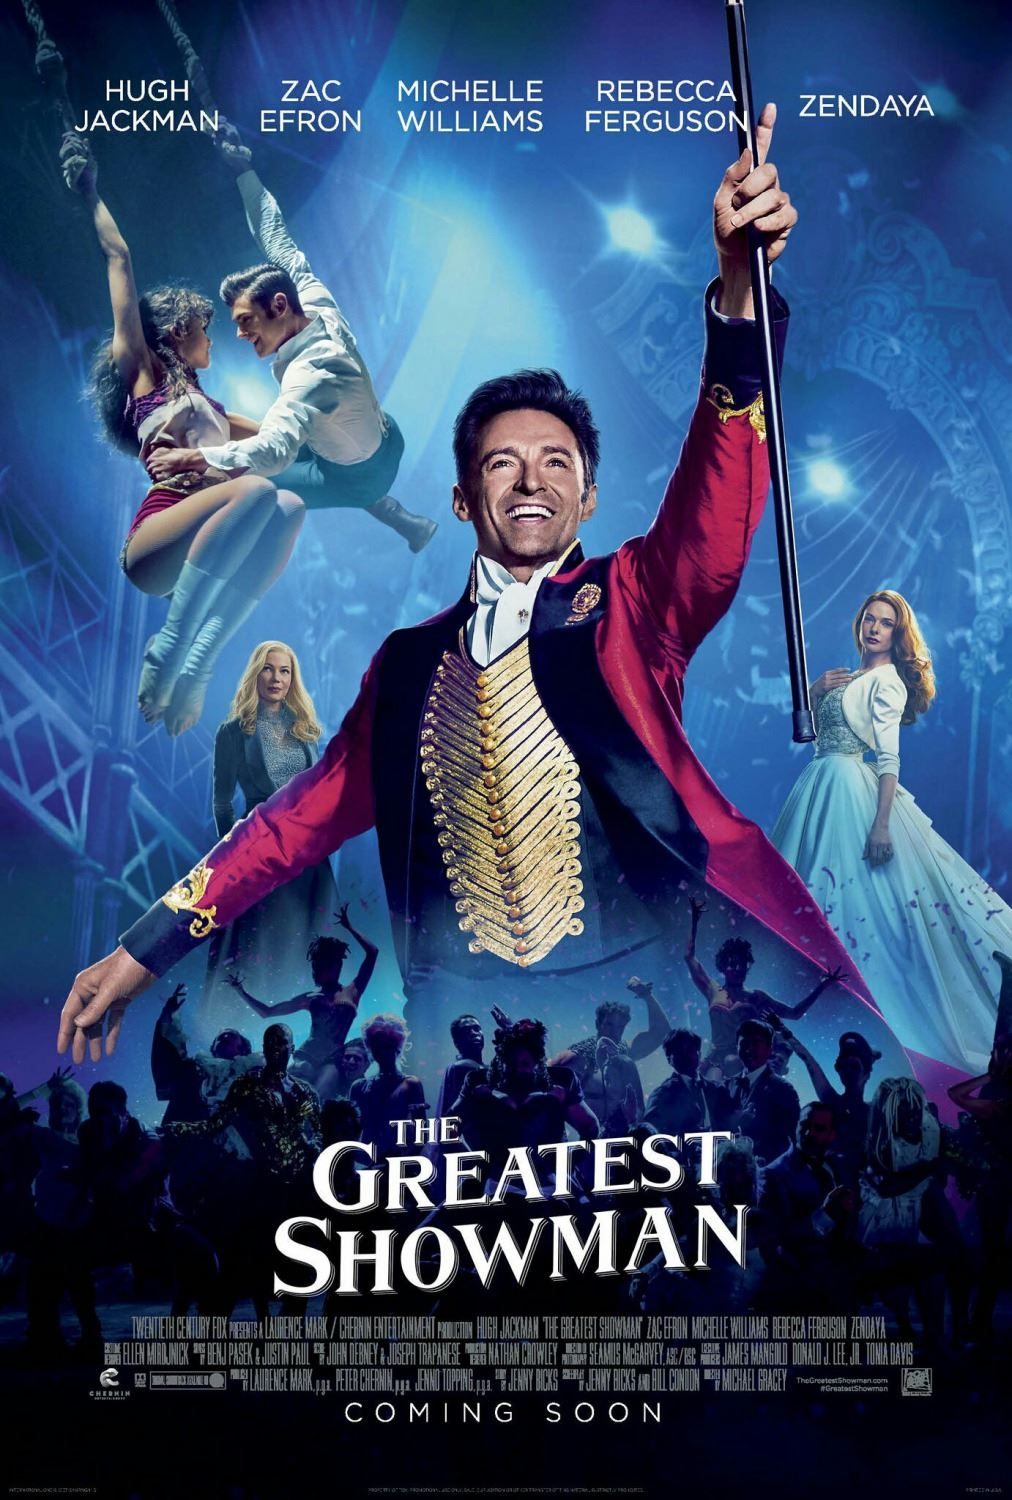 Bio: The Greatest Showman